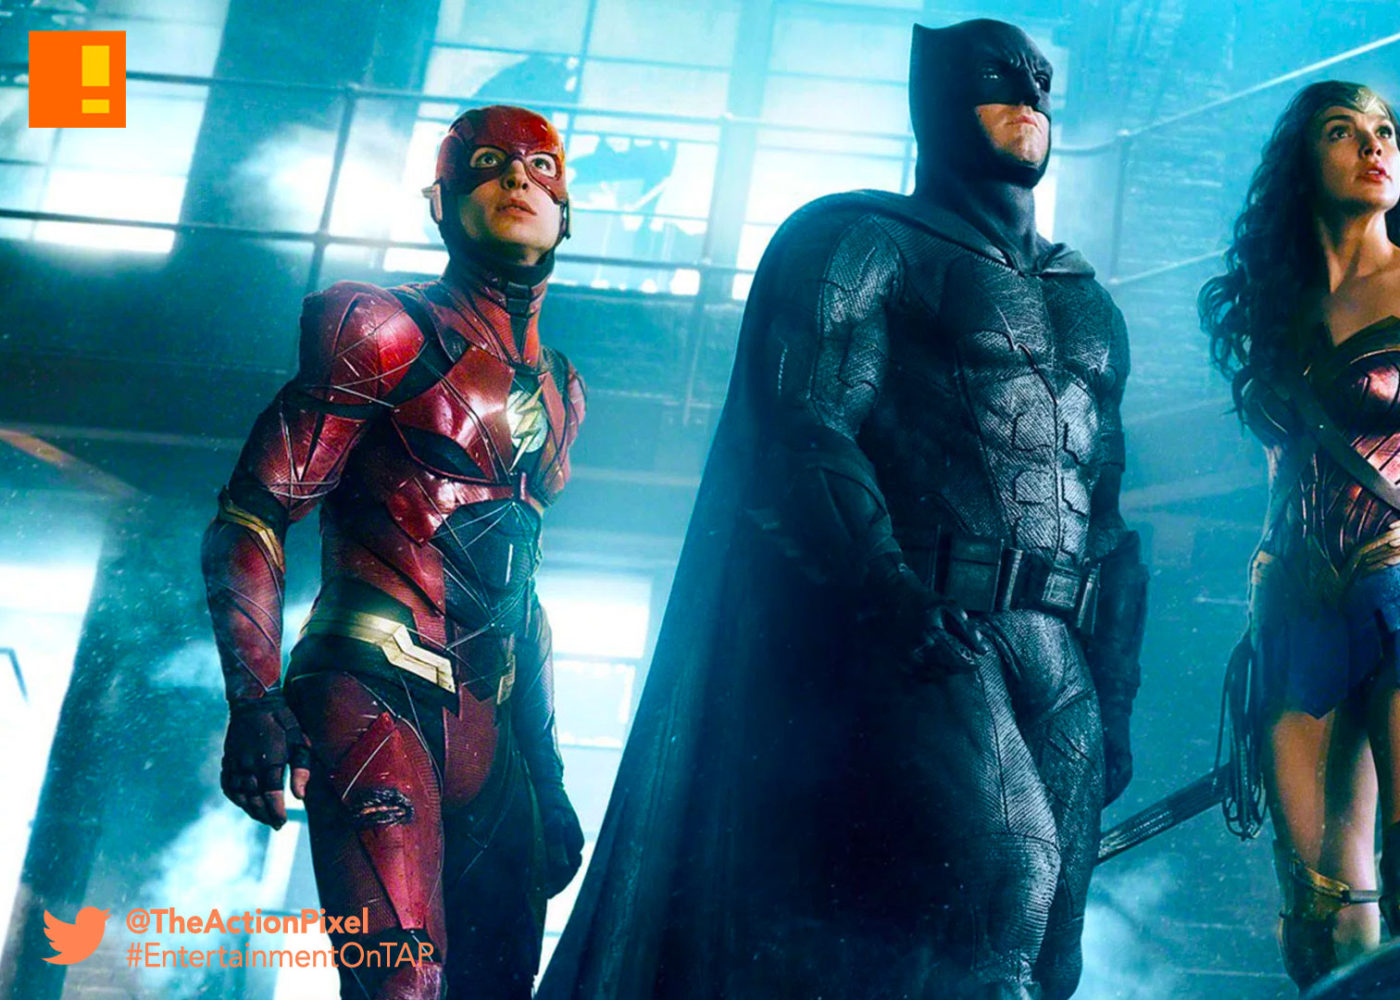 justice league, batman, wonder woman, the flash,the action pixel, entertainment on tap, warner bros. entertainment, wb pictures, dc entertainment ,